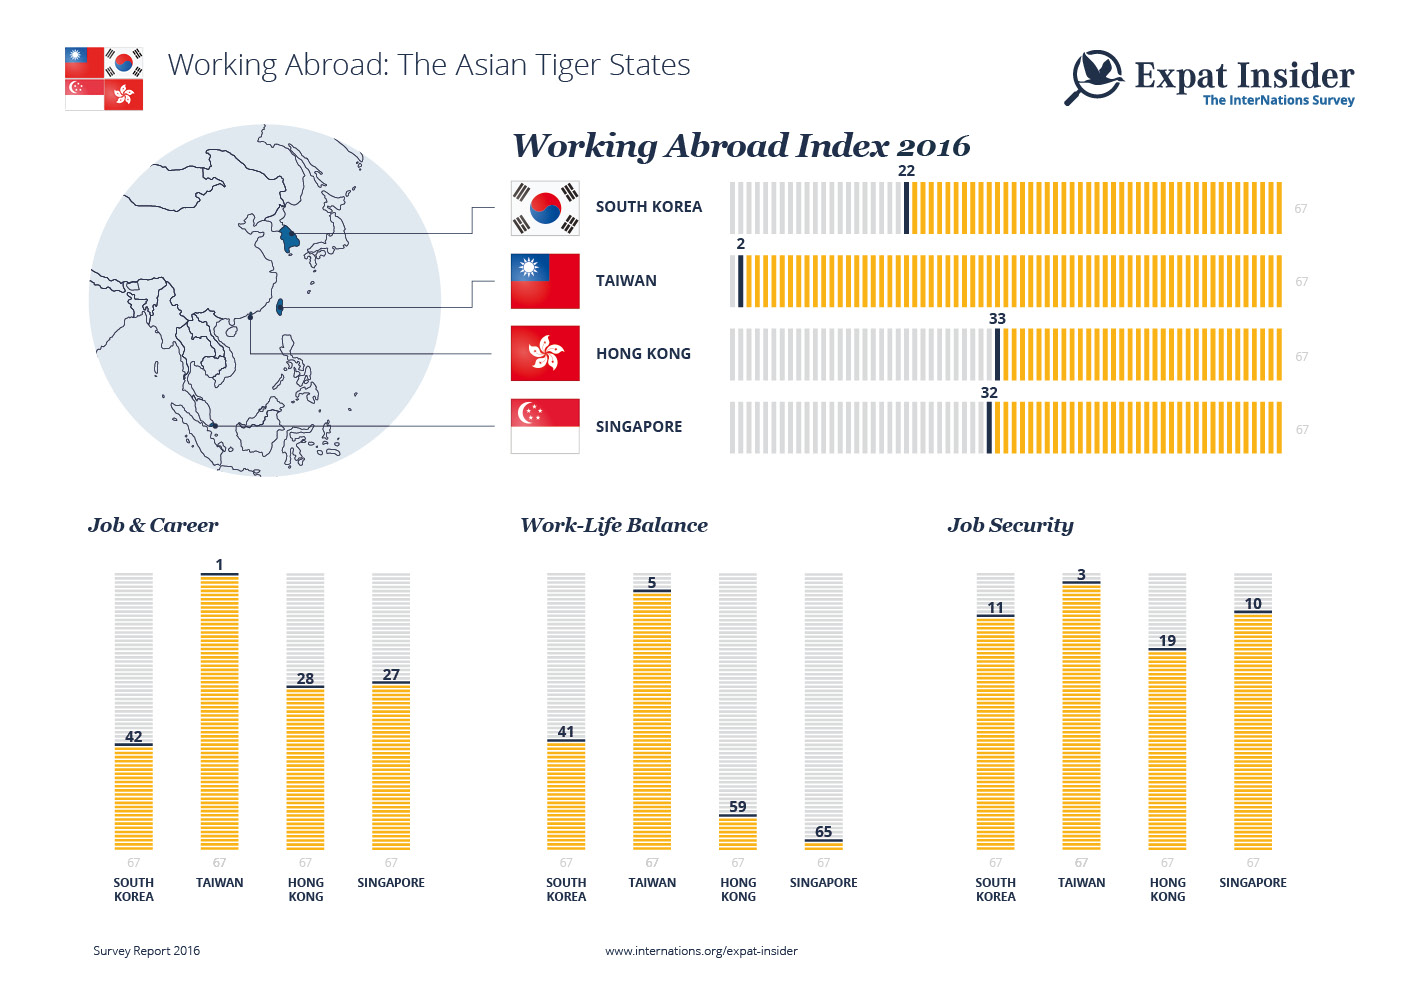 How Expats Rate Working in the Four Asian Tiger States — infographic